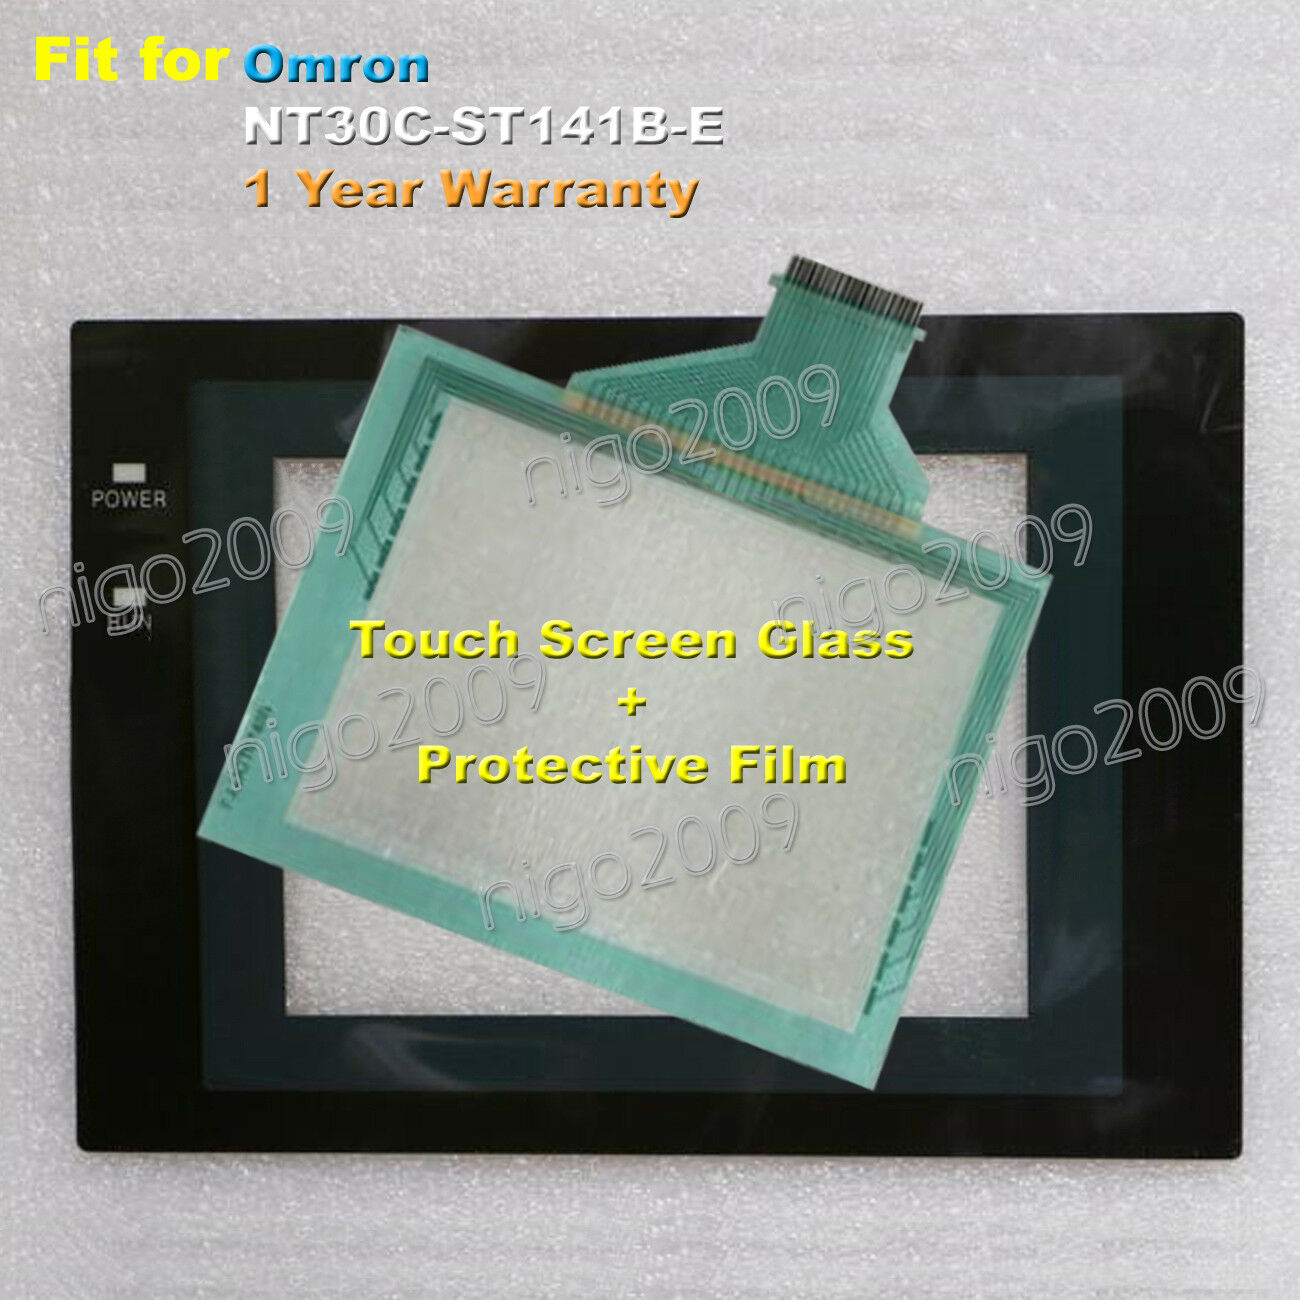 For Omron NT30C-ST141B-E Touch Panel Glass + Predective Film 1 Year Warranty